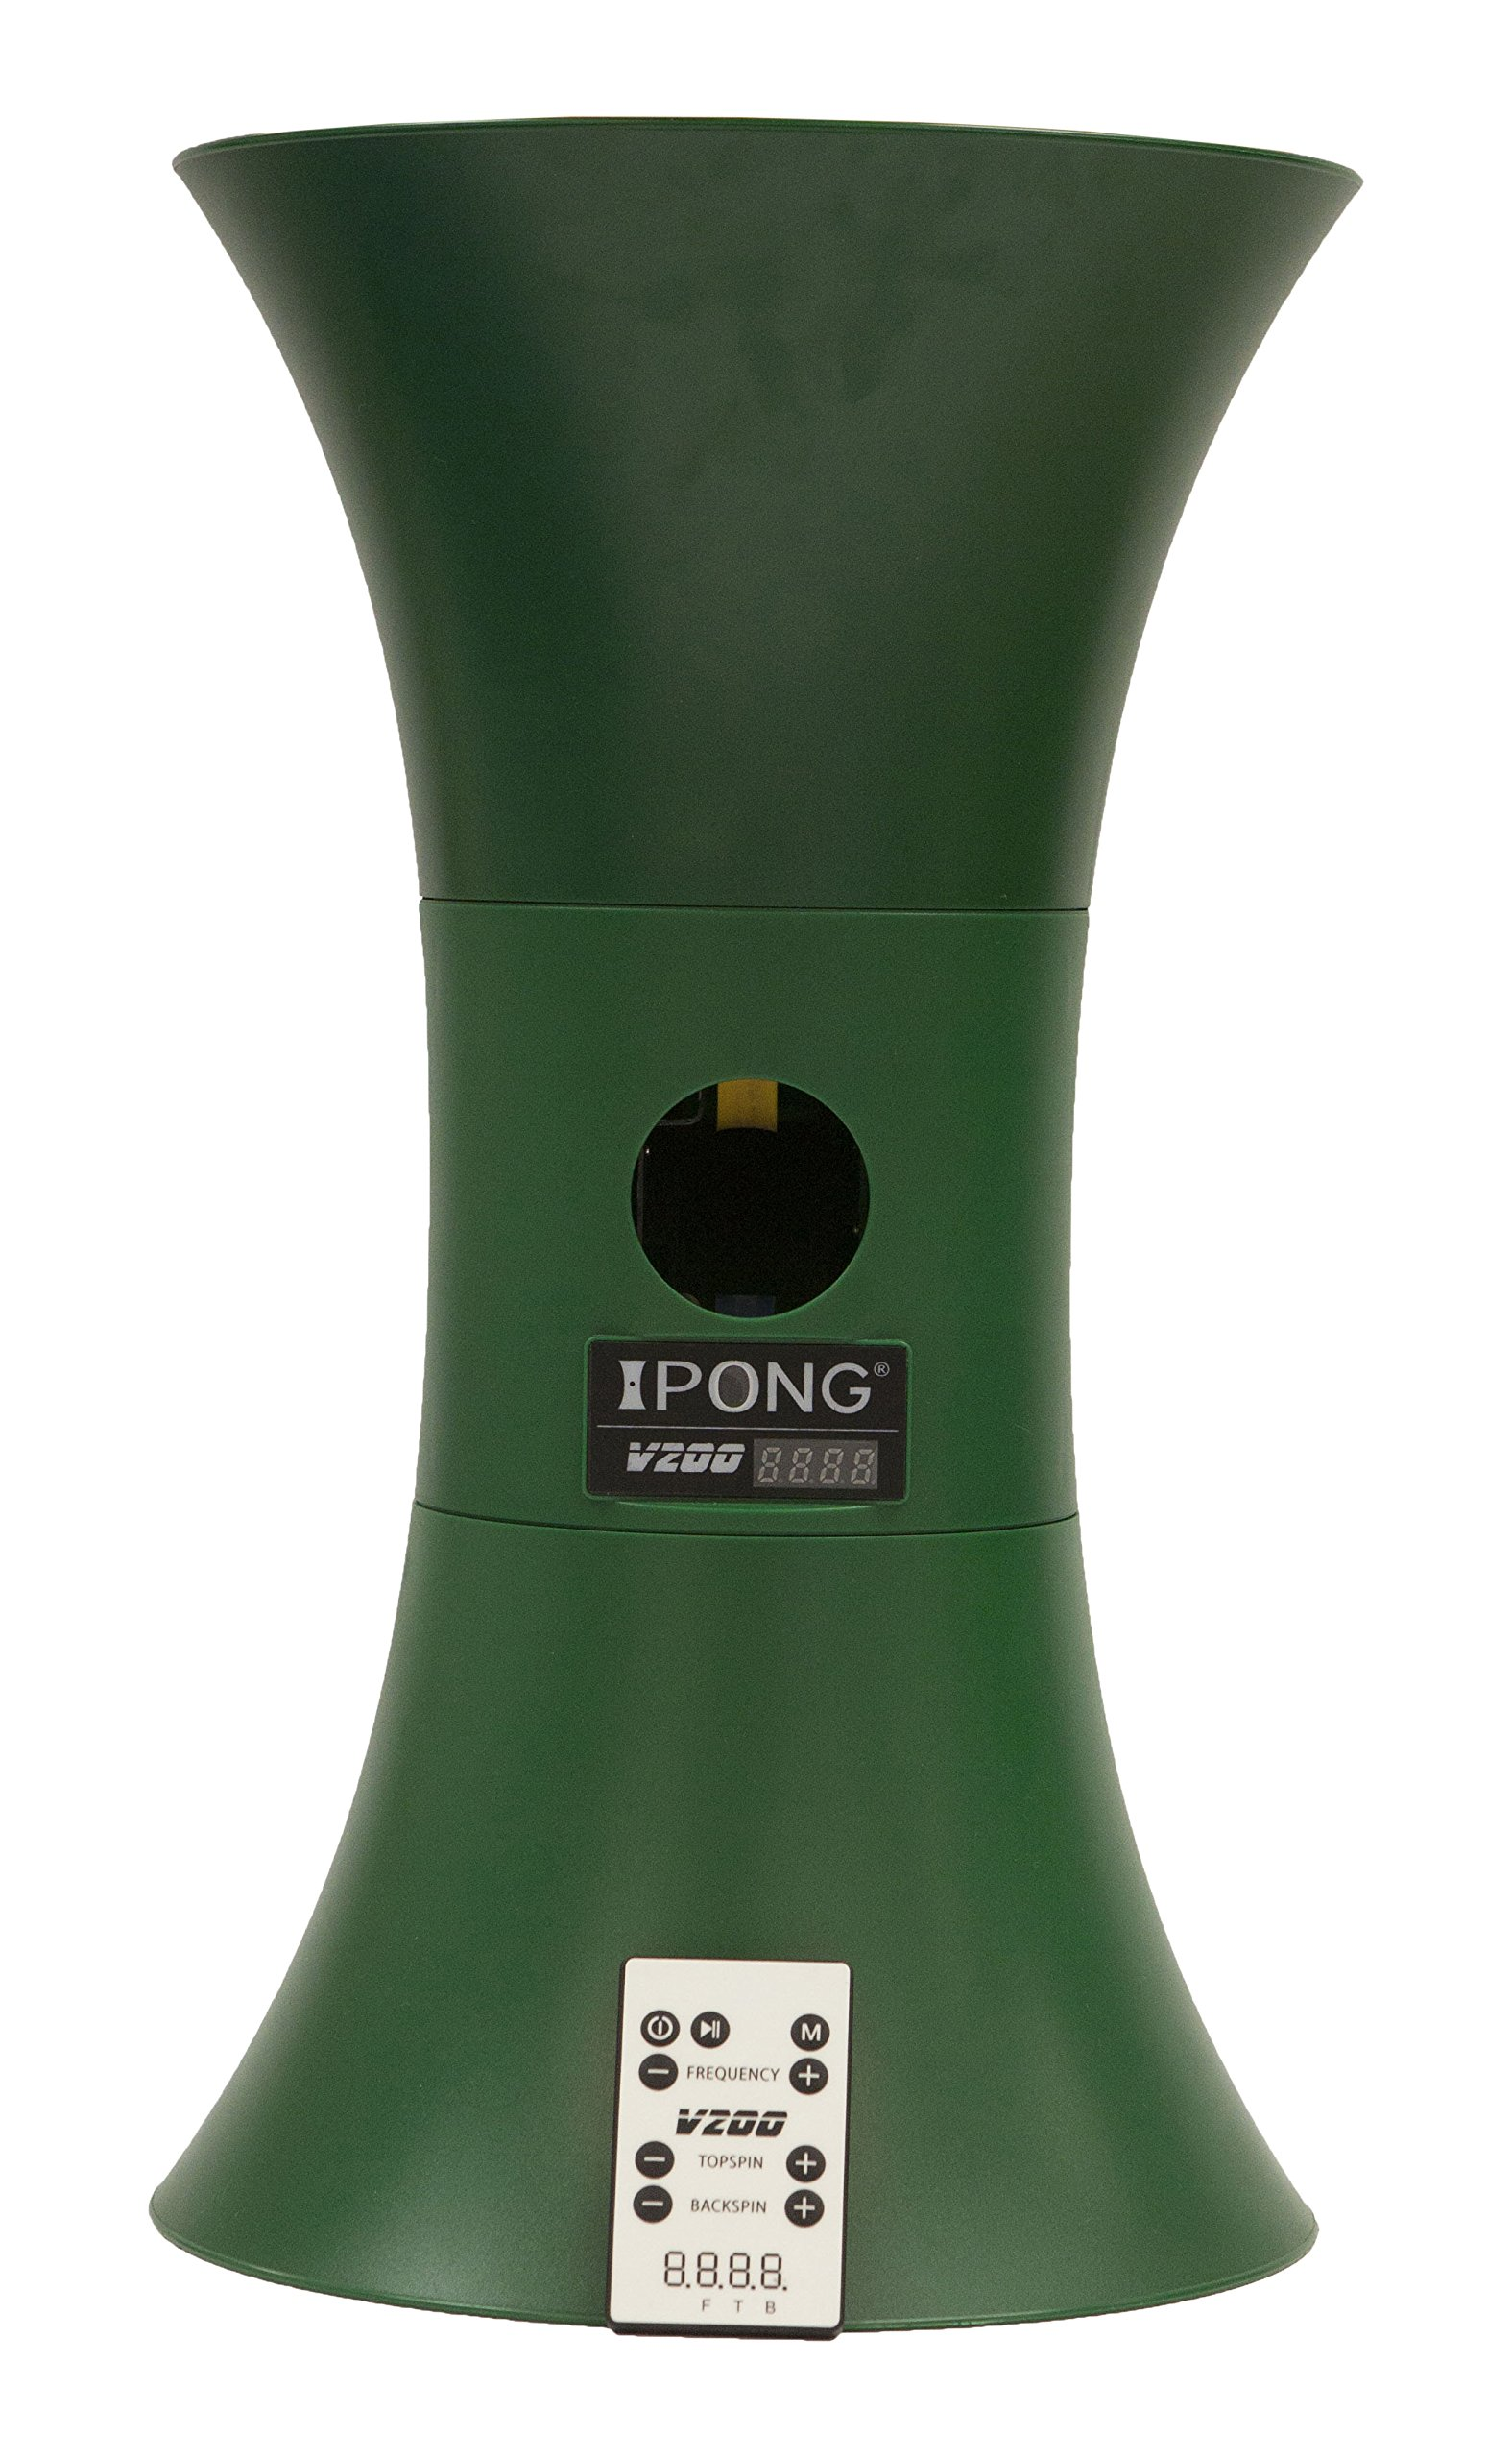 JOOLA iPong V200 Table Tennis Trainer Robot, Green